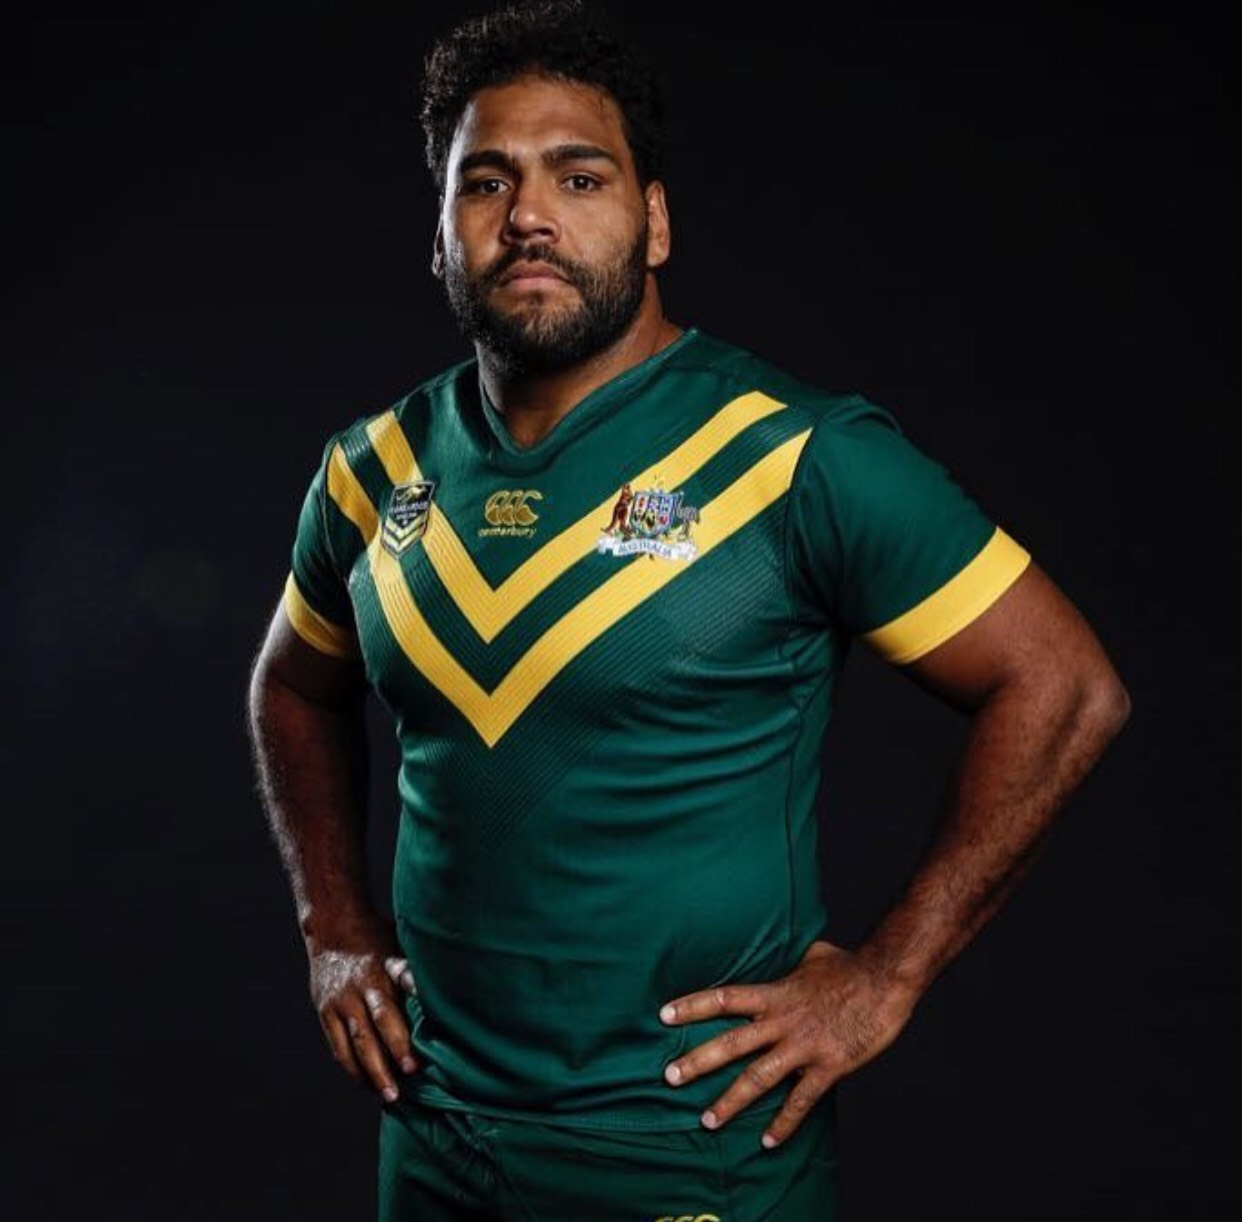 Australian rugby league & Brisbane Broncos legend, Sam Thaiday will be a special guest at the next Music & Movement Escape 25th-29th March 2019